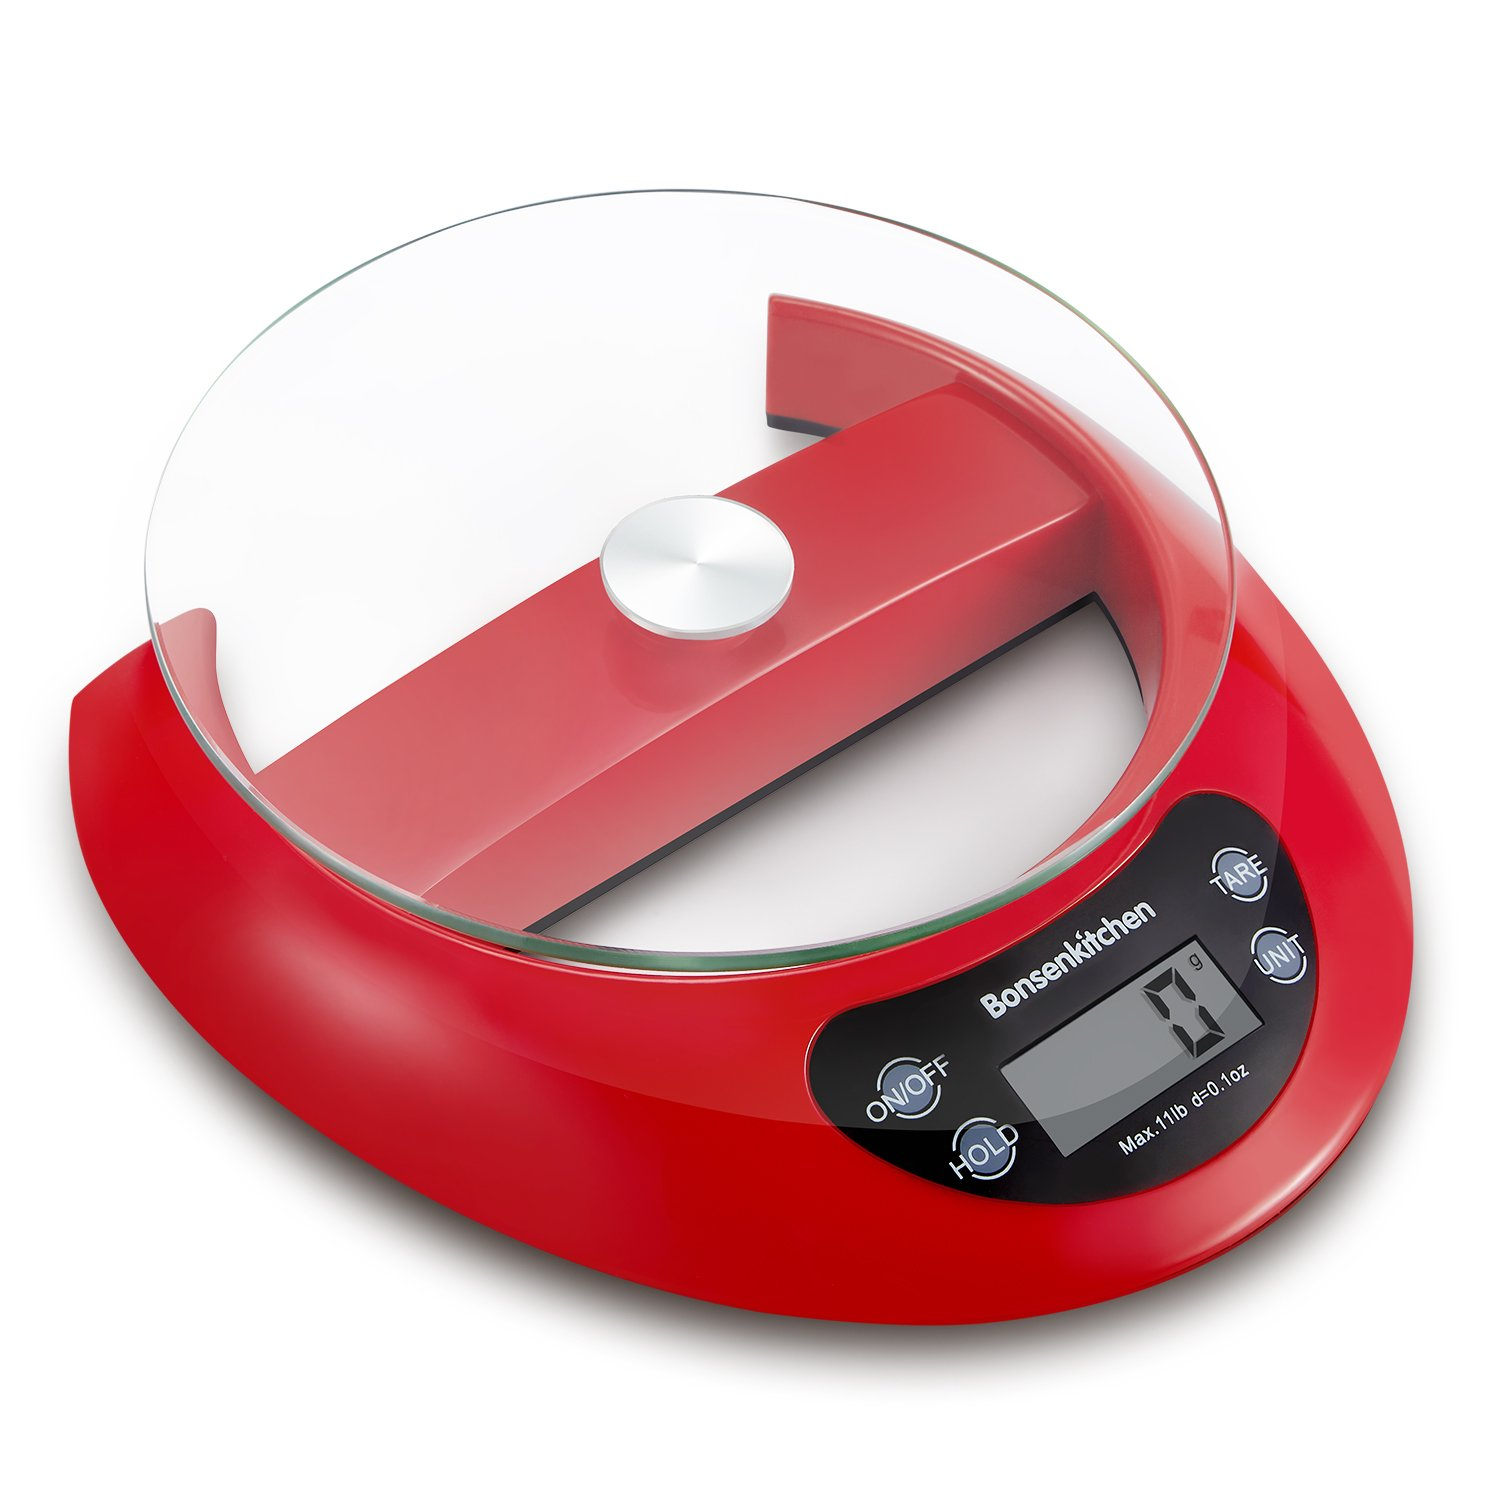 Bonsenkitchen Digital Sensitive Kitchen Food Scale for Cooking and Baking with Tare Function and Removal Glass Tray, 5kg 11lb, High Precision Sensor System, Red(KS8802)